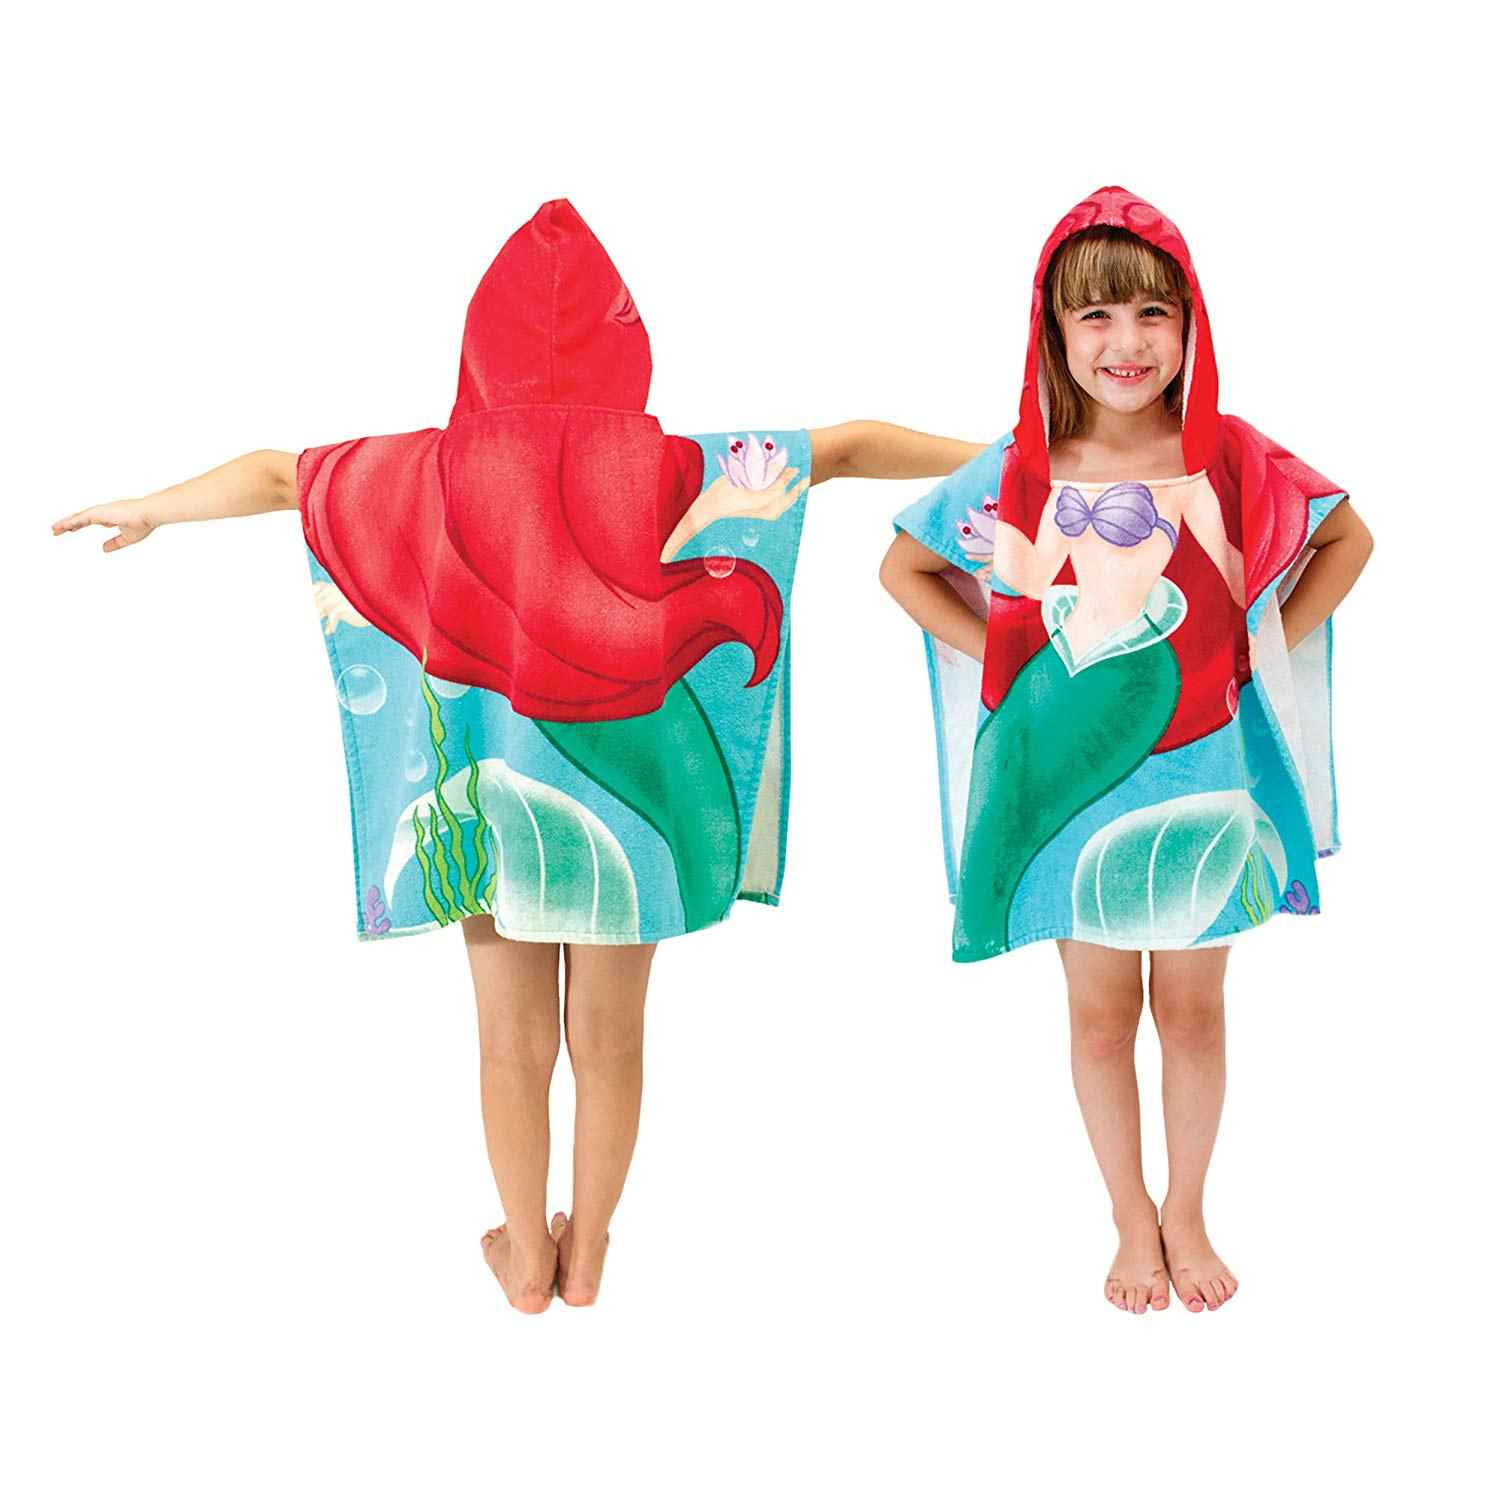 New Children Mermaid Cute Cartoon Hooded Cloak Beach Towel Animal Printed Microfiber Baby Boys Girls Kids Swimming Bath Towel